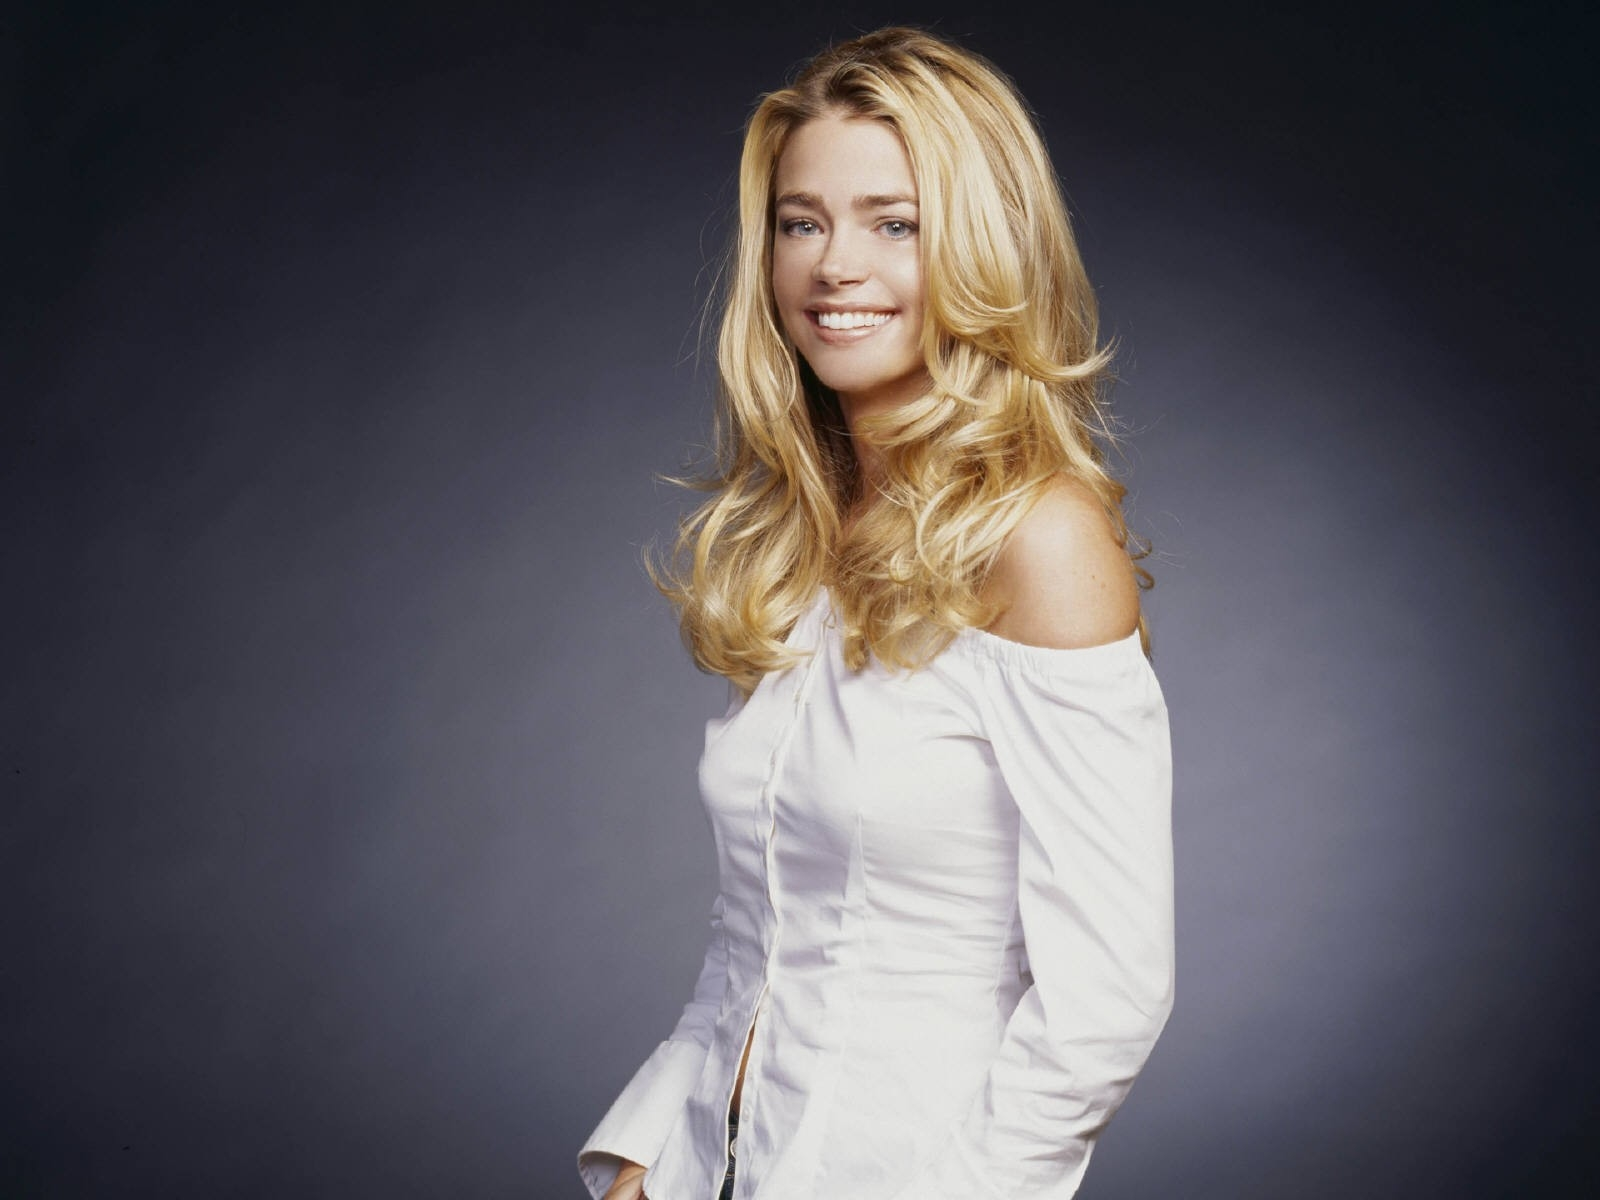 Wallpaper di Denise Richards - 38